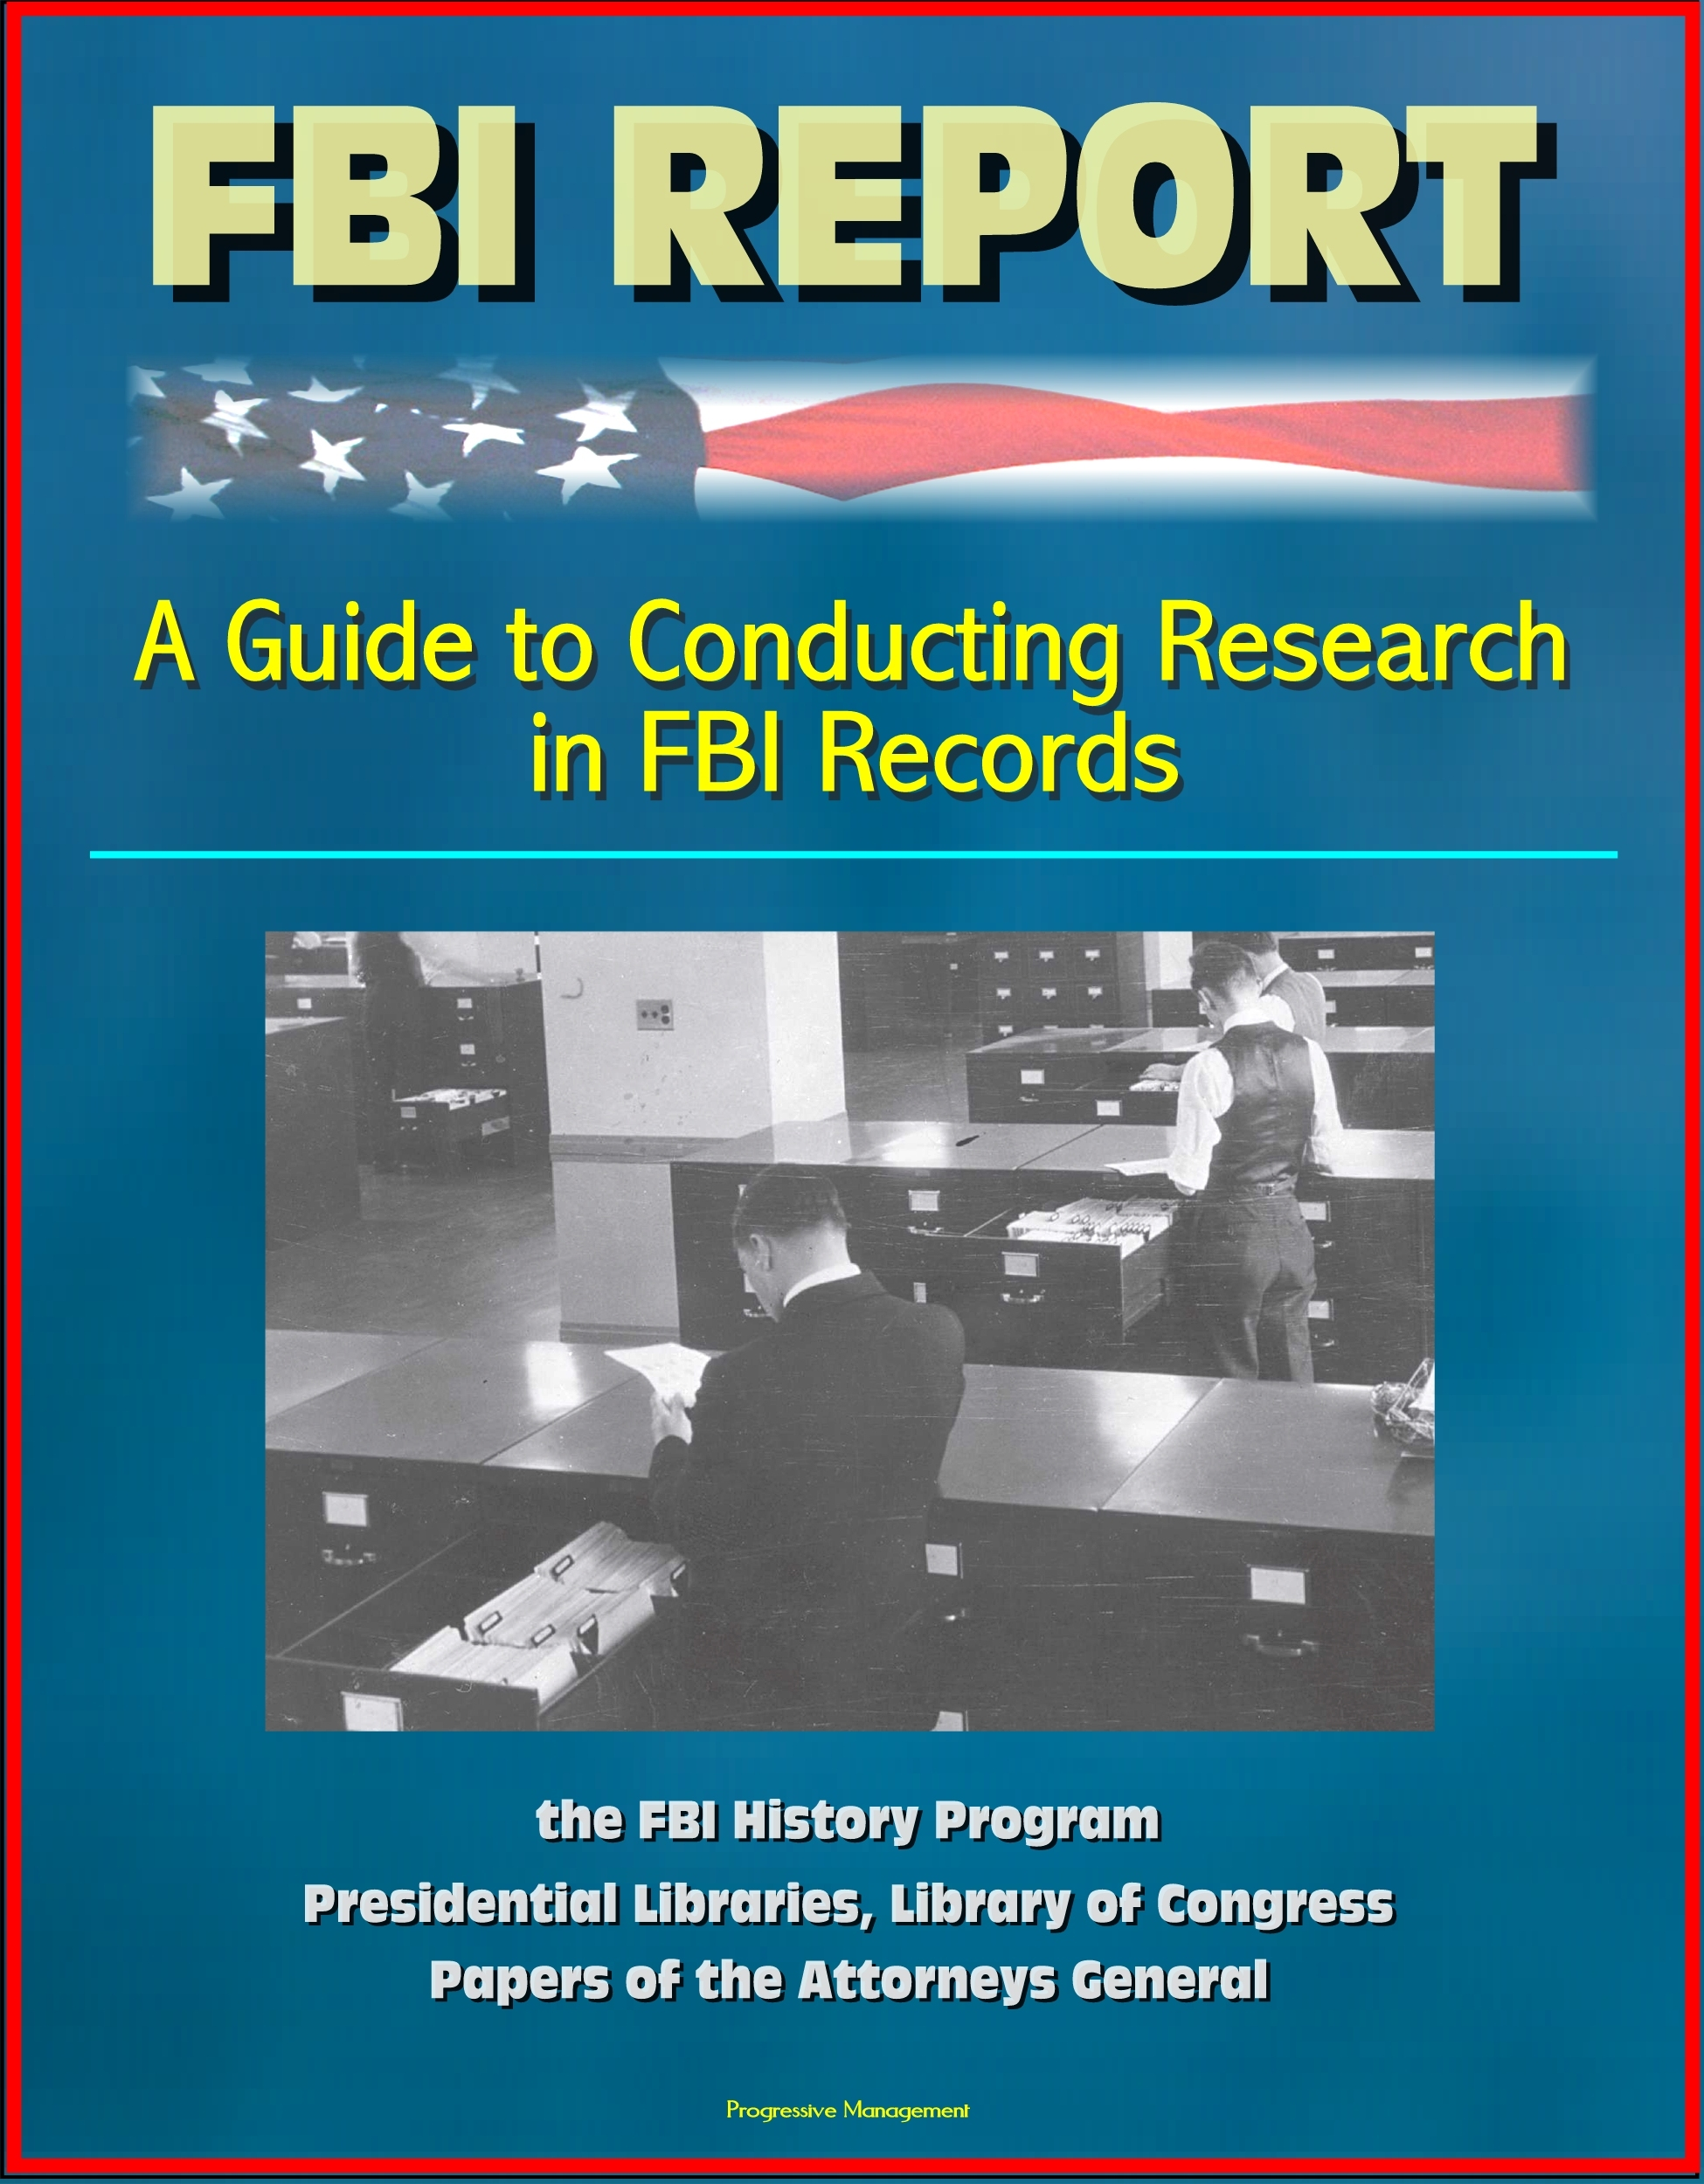 FBI Report: A Guide to Conducting Research in FBI Records, the FBI History Program - Presidential Libraries, Library of Congress, Papers of the Attorneys General